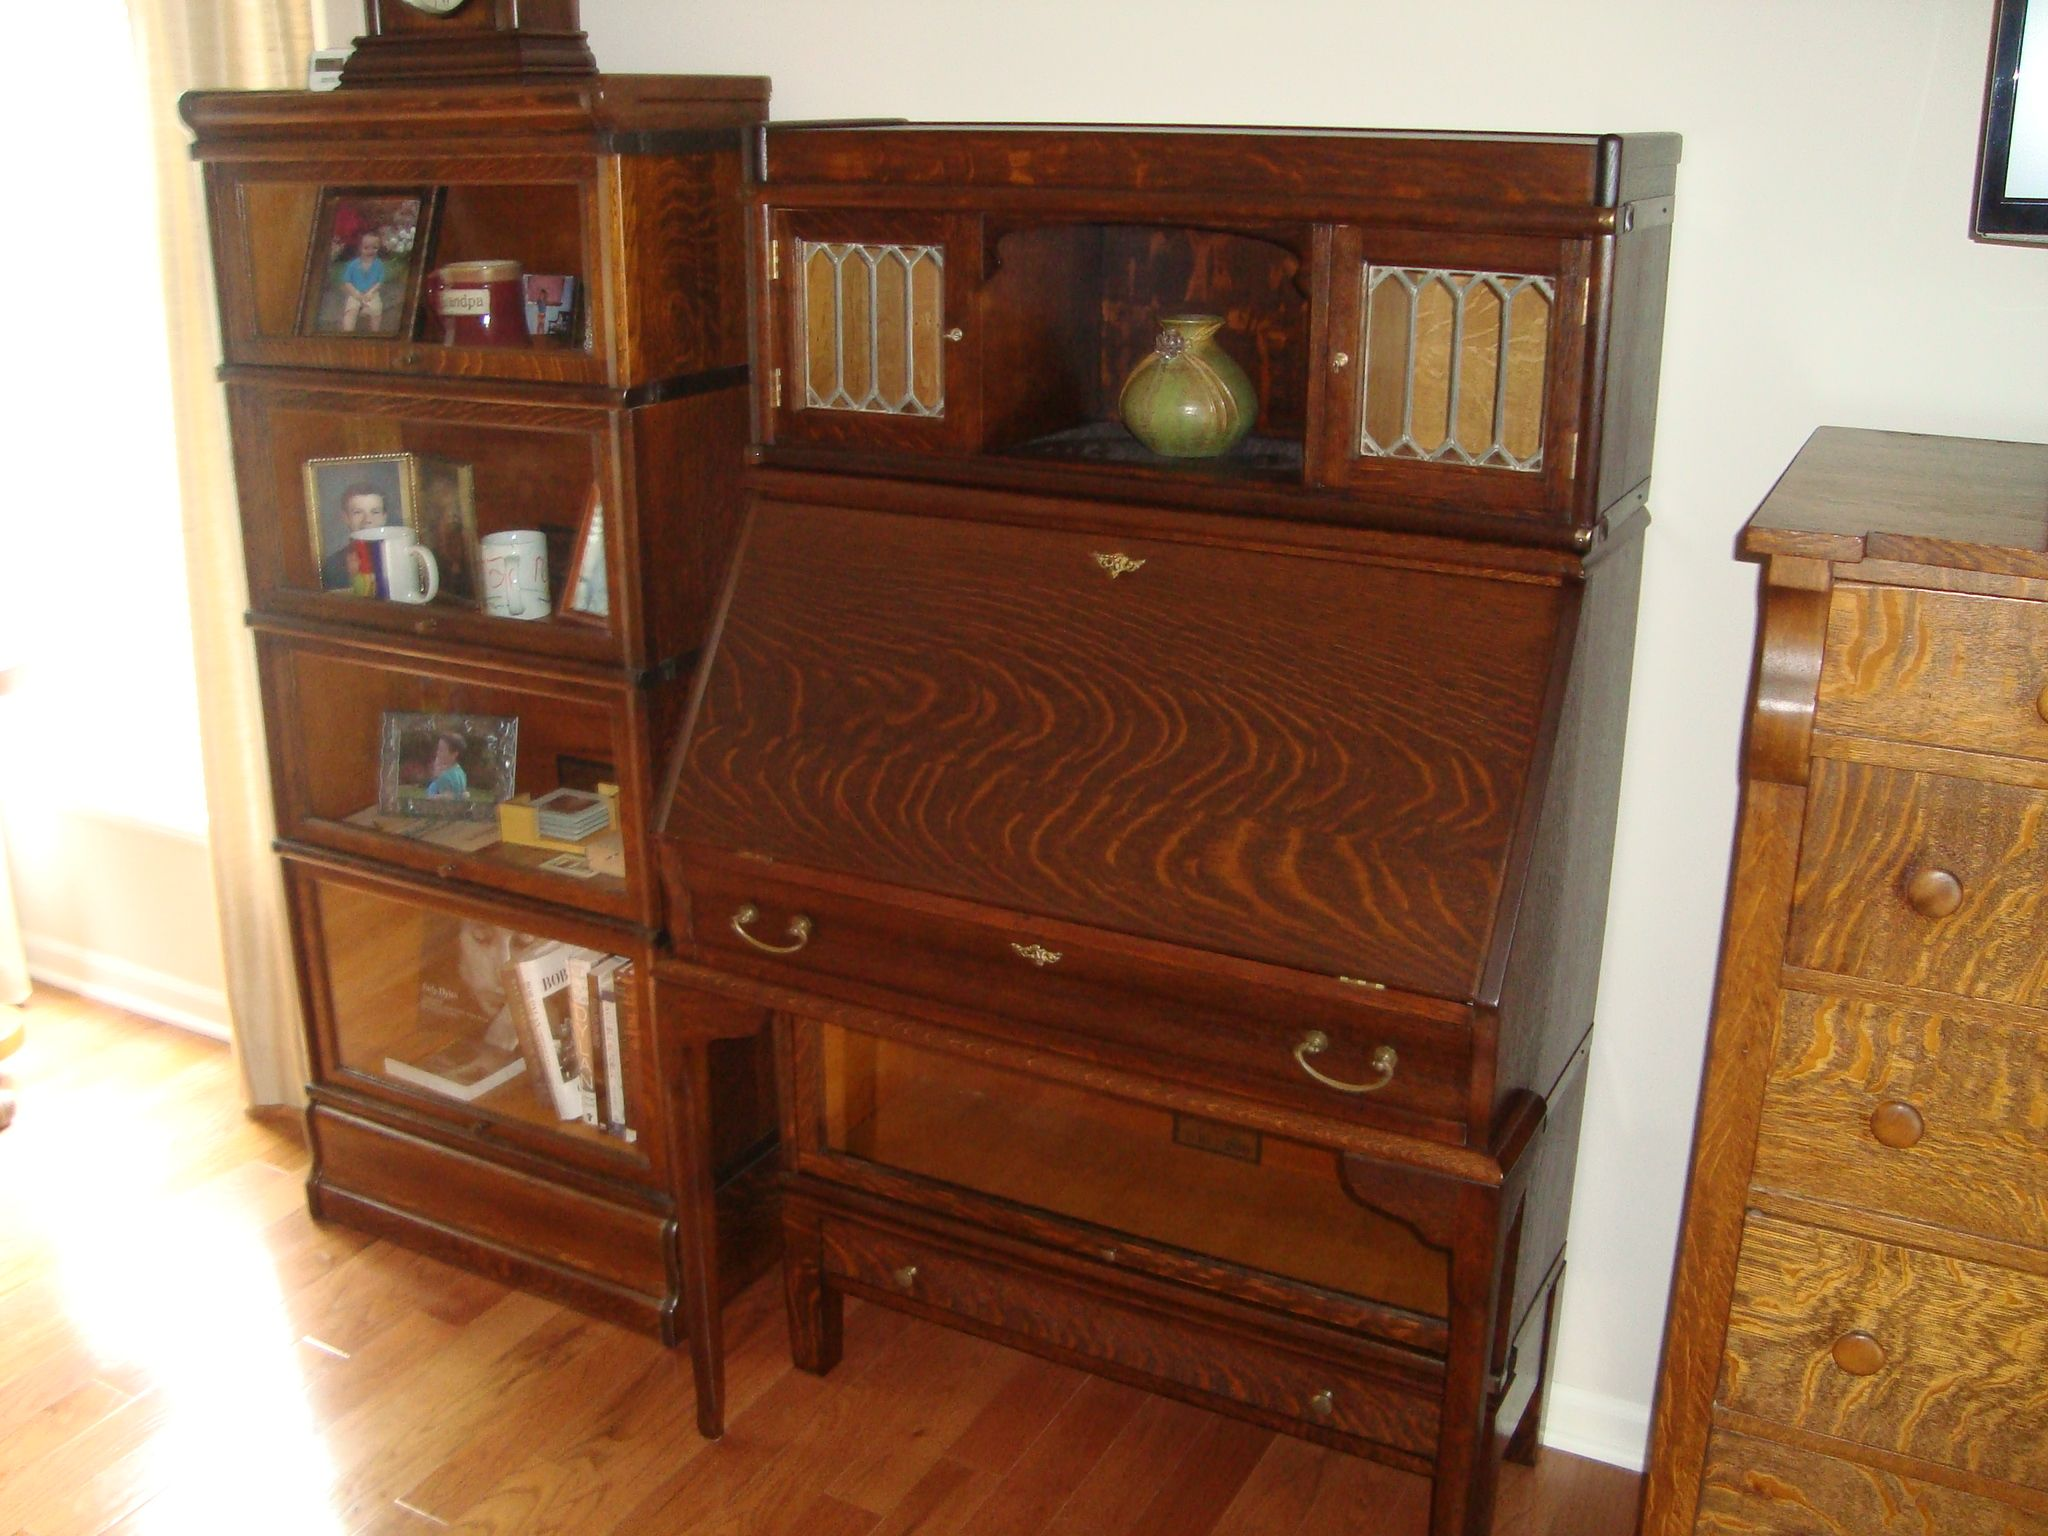 Rare Globe Wernicke Bookcase With Desk Drawer Base And Top Locker Section And A 3 4 Size Four Stack Bookcase Bookcase Bookcases For Sale Vintage Cabinets